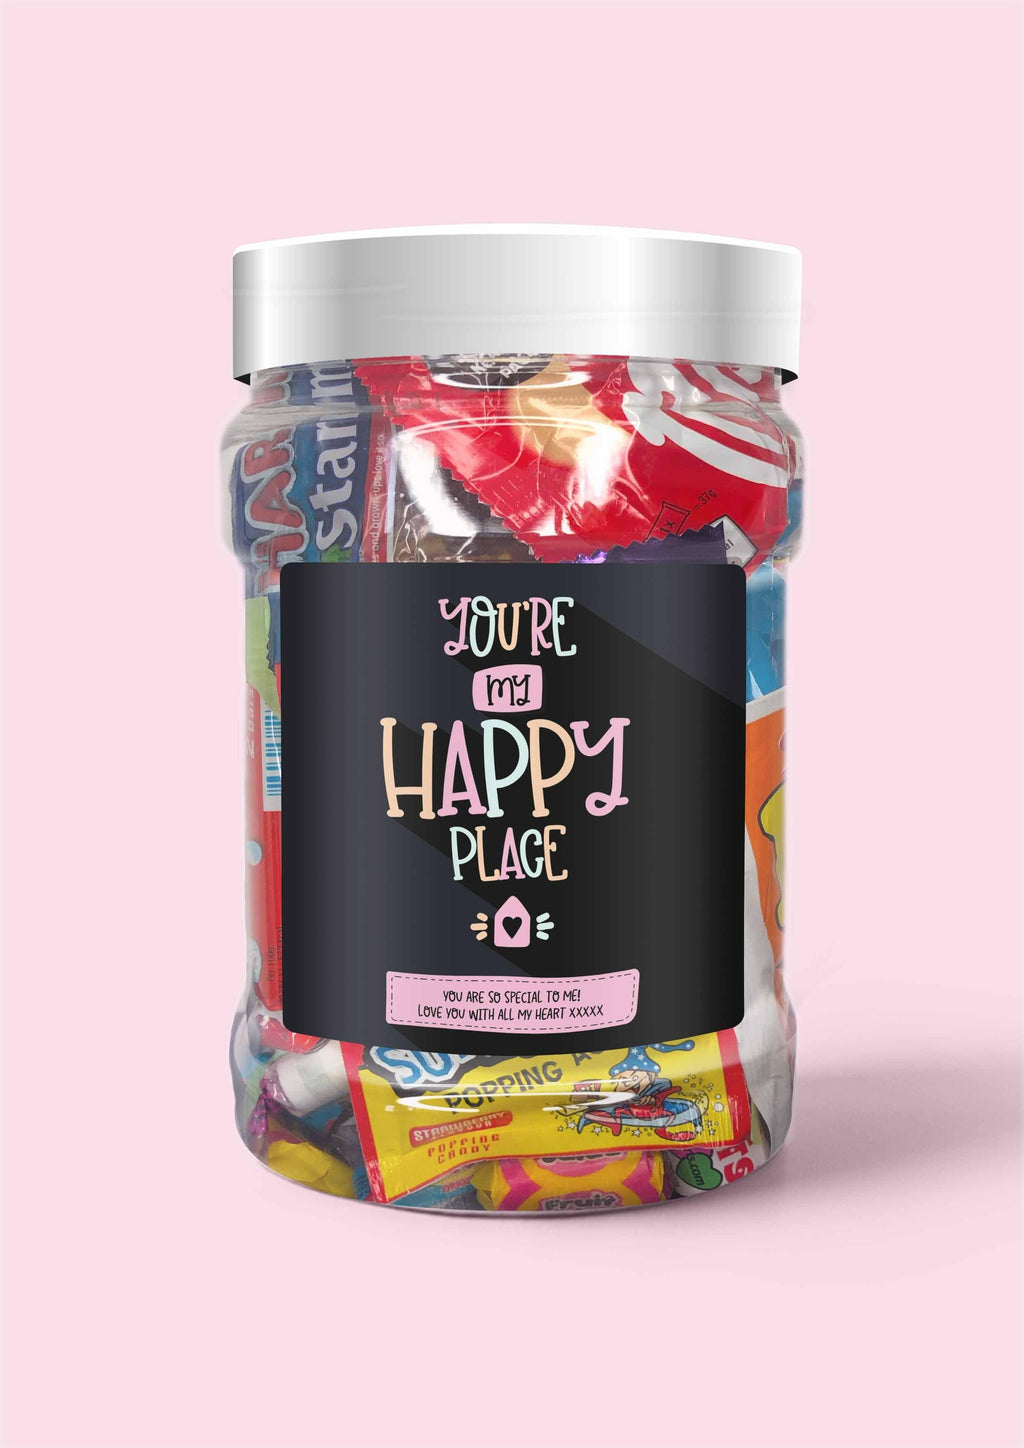 My Happy Place - Sweet Dreams Candy